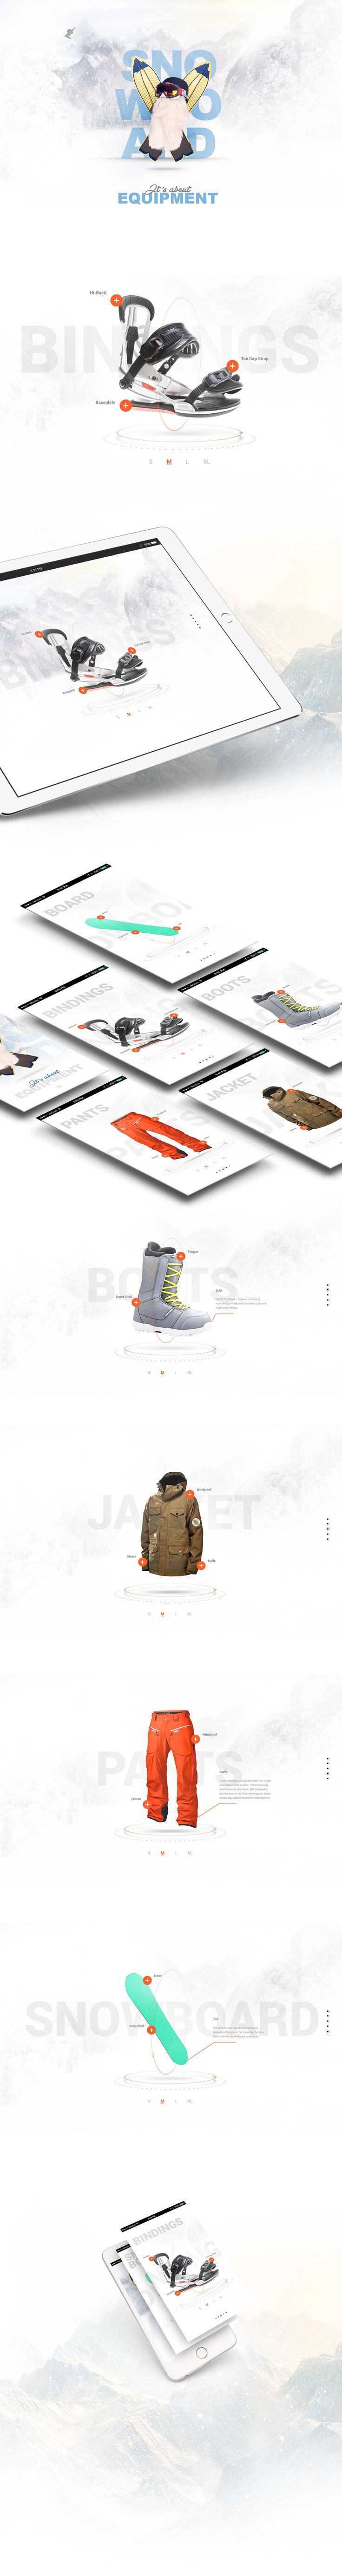 I am very passionate about snowboarding so I did web page about snowboarding equipment without mentioning any specific manufacturers. Images are for illustrative purposes only.